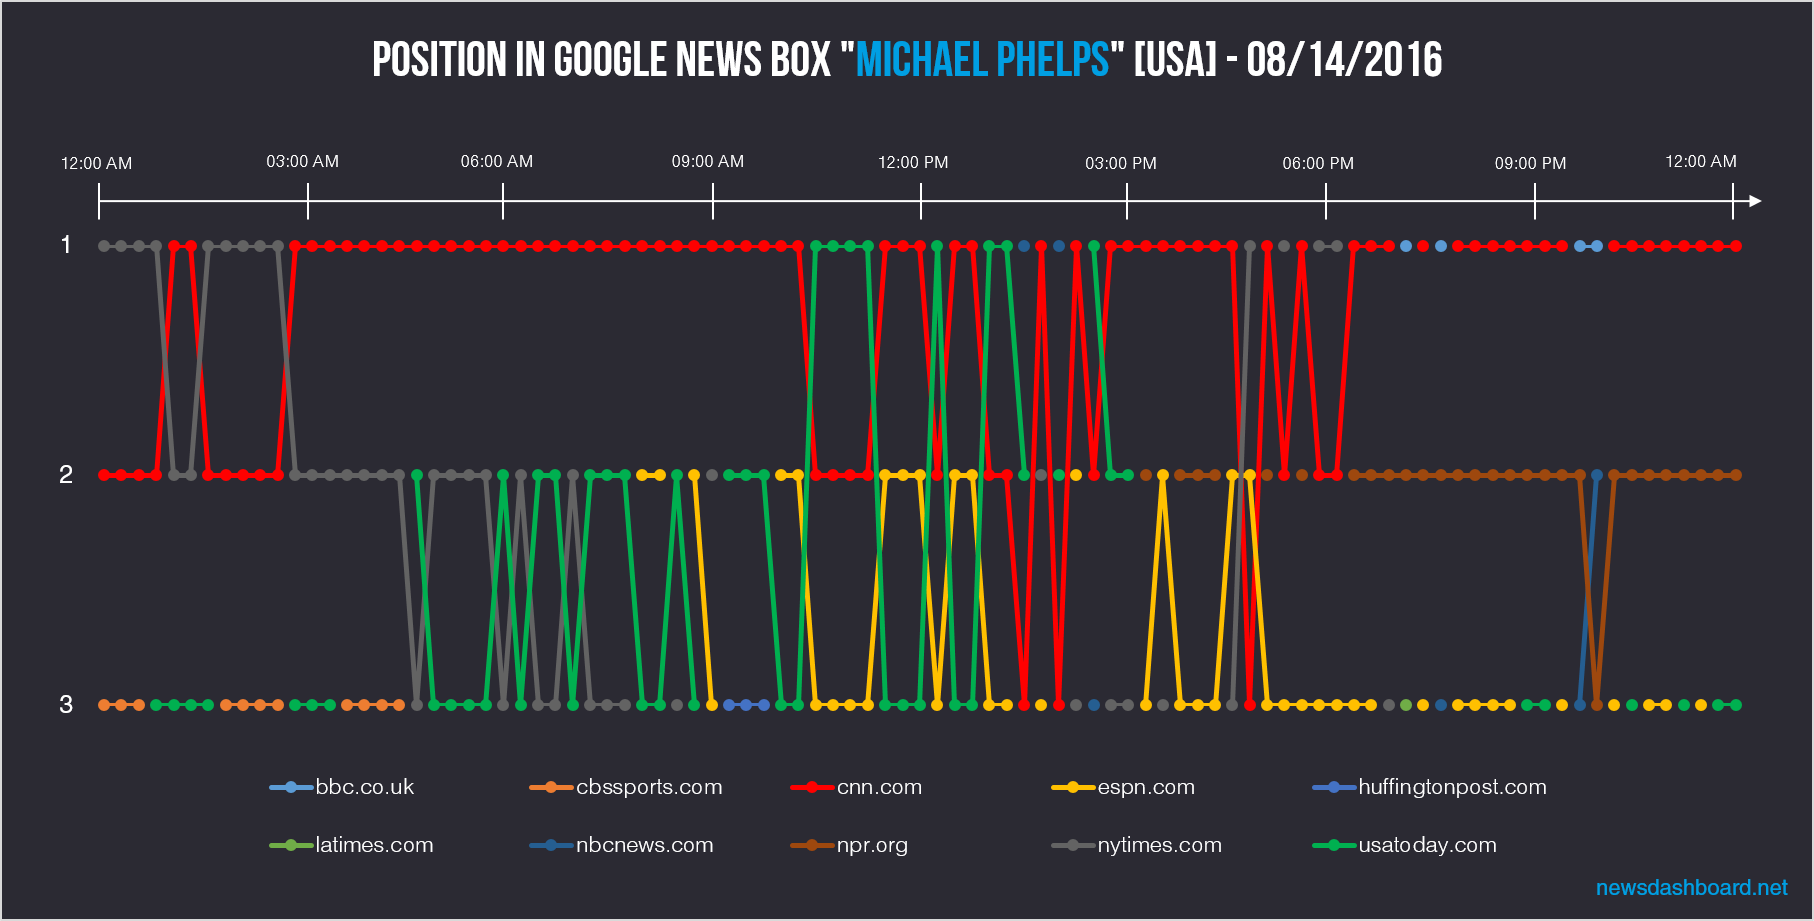 cnn.com clearly strongest for keyword michael phelps in Google News Boxes on 14th August